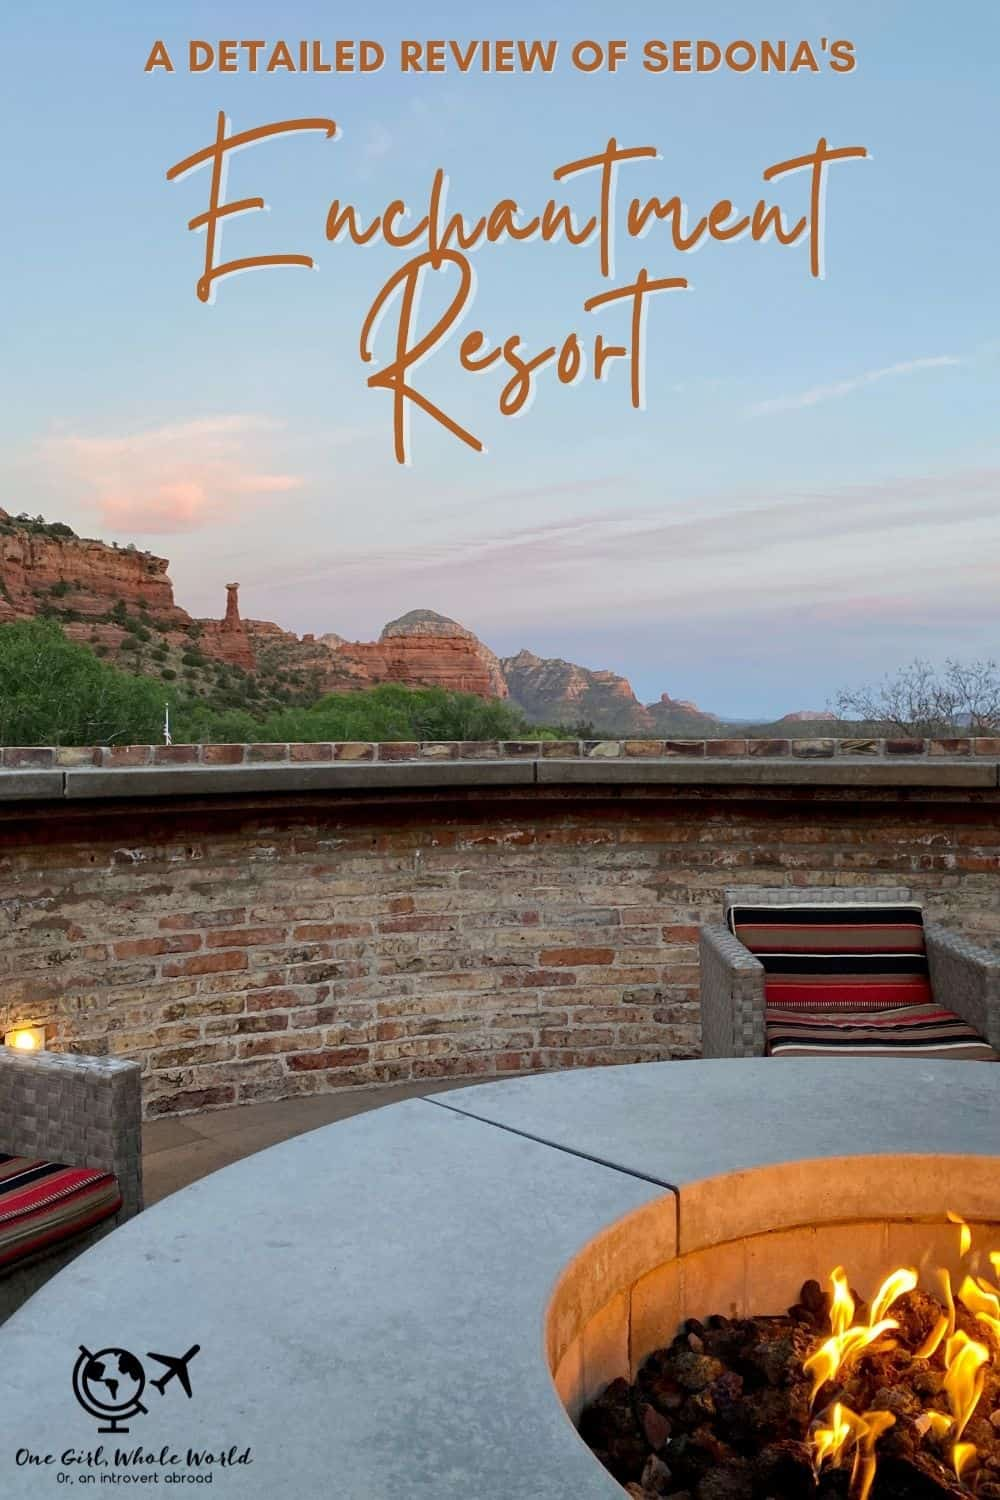 """Detailed Review of Sedona's Enchantment Resort   If you're looking for a splurge, luxury, or unique place to stay in Sedona, Enchantment Resort is probably on your list. This honest review gives a detailed account of my stay there, including rooms, grounds, pools, restaurants, service, hiking & more! And whether it qualifies as """"luxury"""". #sedona #arizona #resortreview #luxury"""